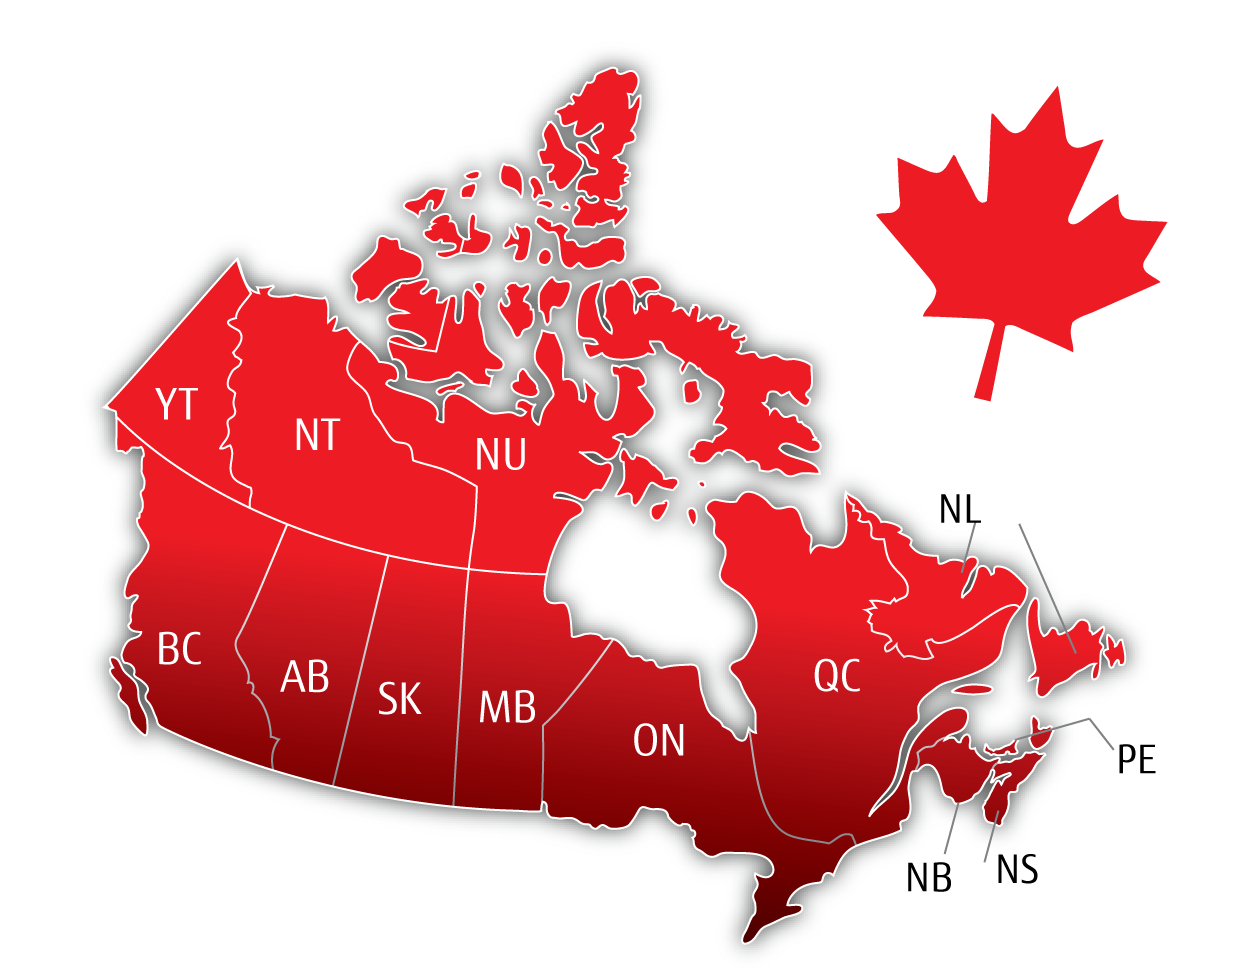 http://solutions.ca.fujitsu.com/img/products/imaging/canada_map.png